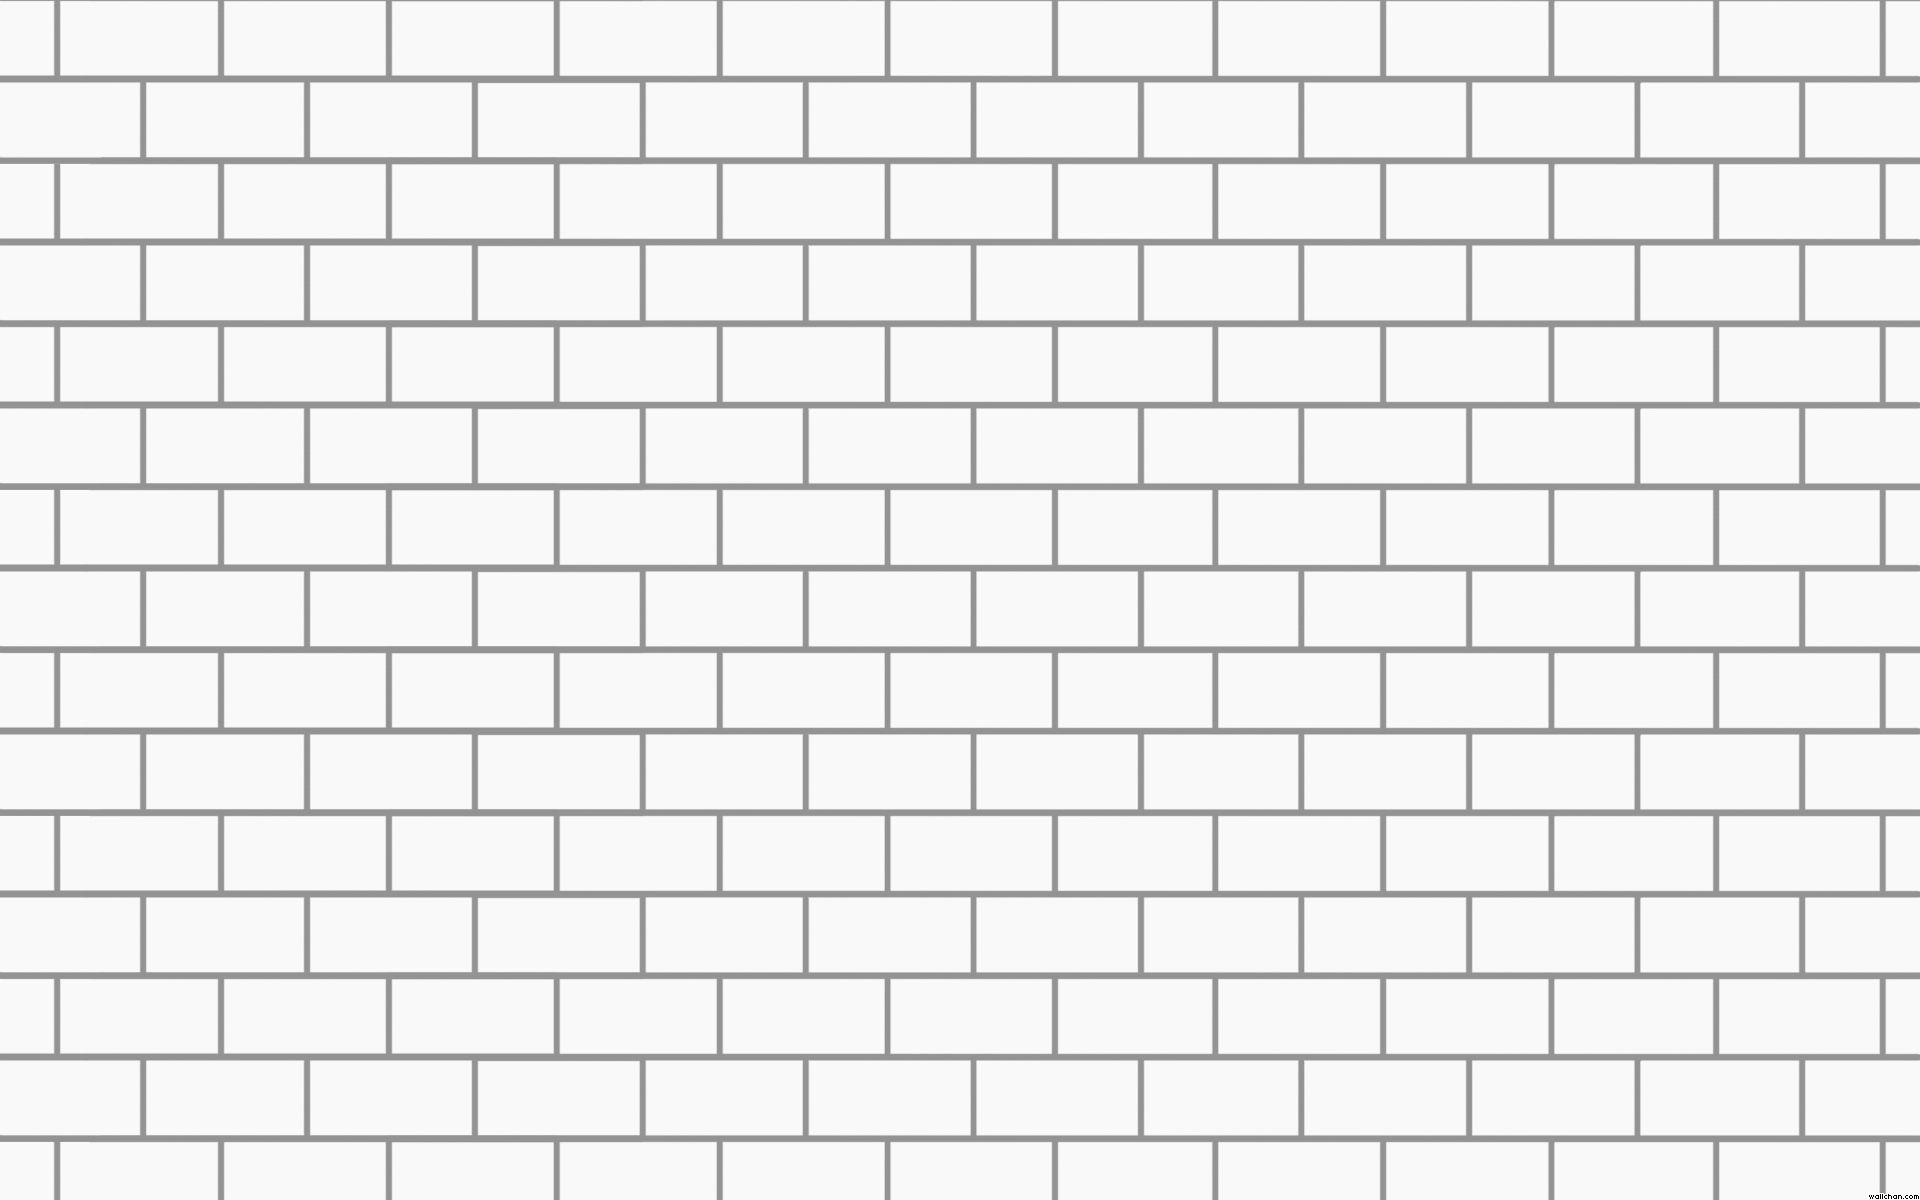 pink floyd the wall wallpaper (75+ images)